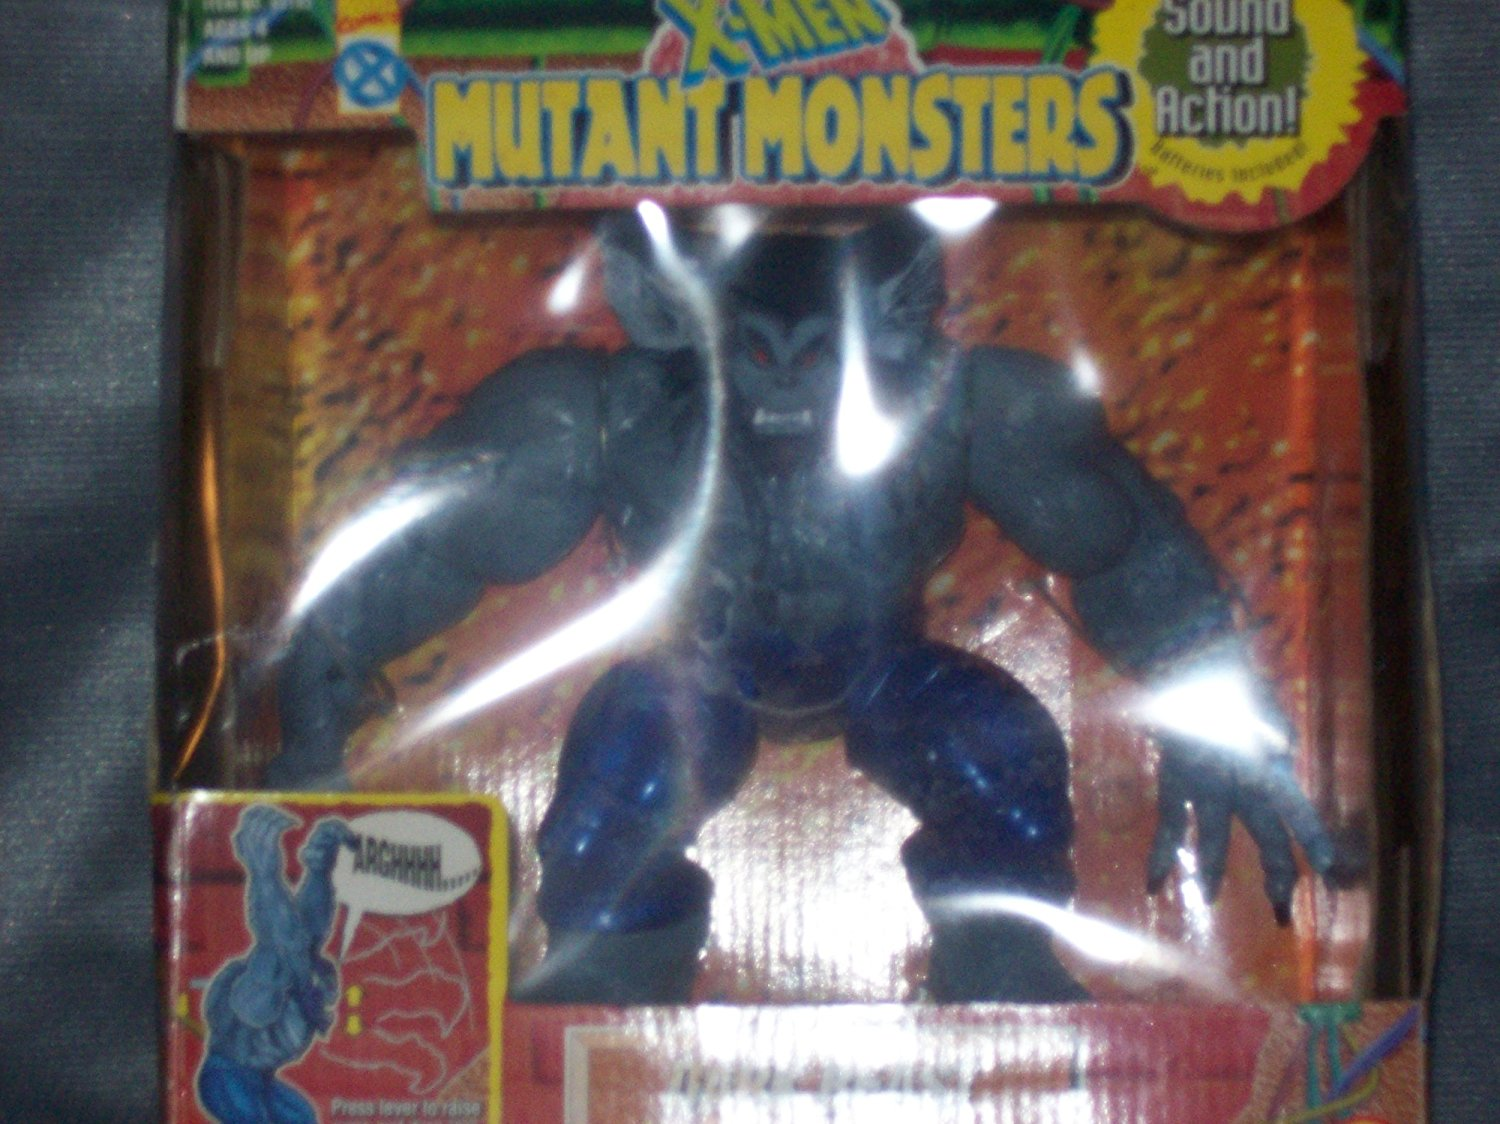 Marvel Comics X-Men Mutant Monsters Dark Beast with Growl and Scratch Action 43193 by Marvel